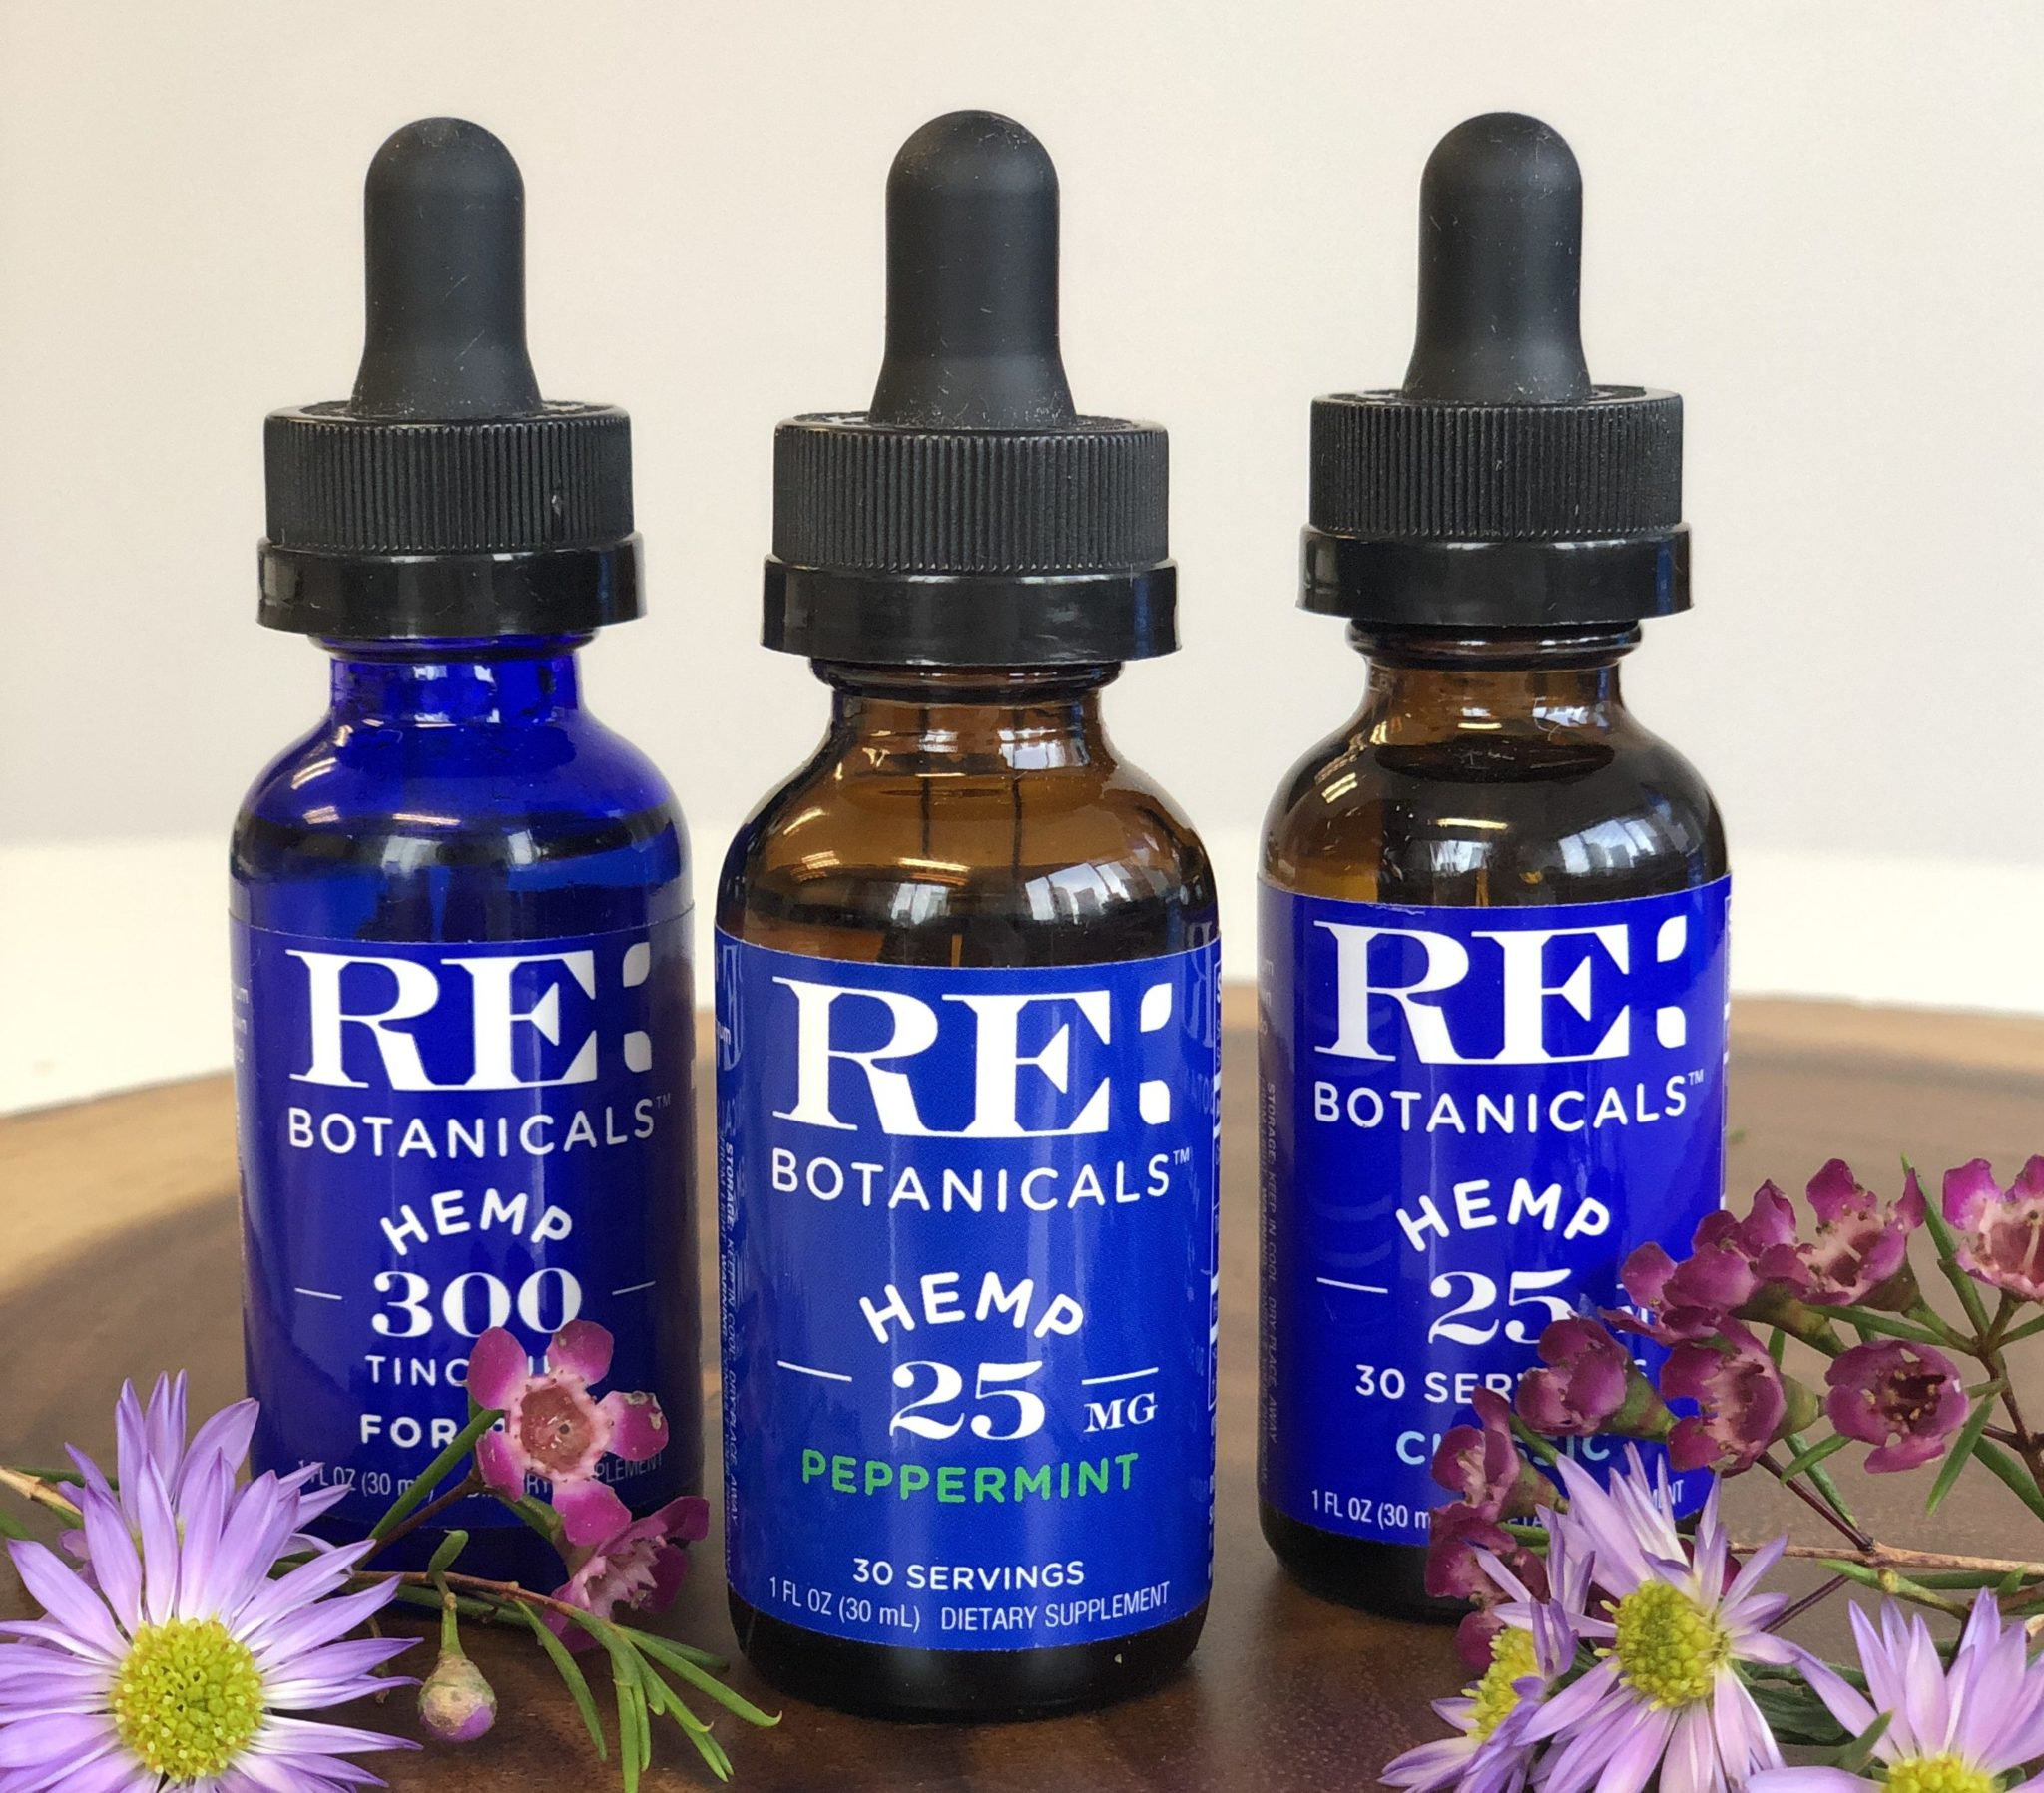 RE Botanicals Hemp Tincture tastes great, and left our reviewers feeling relaxed. Photo: RE Botanicals Hemp Tincture bottles on top of a wooden surface decorated with flowers.